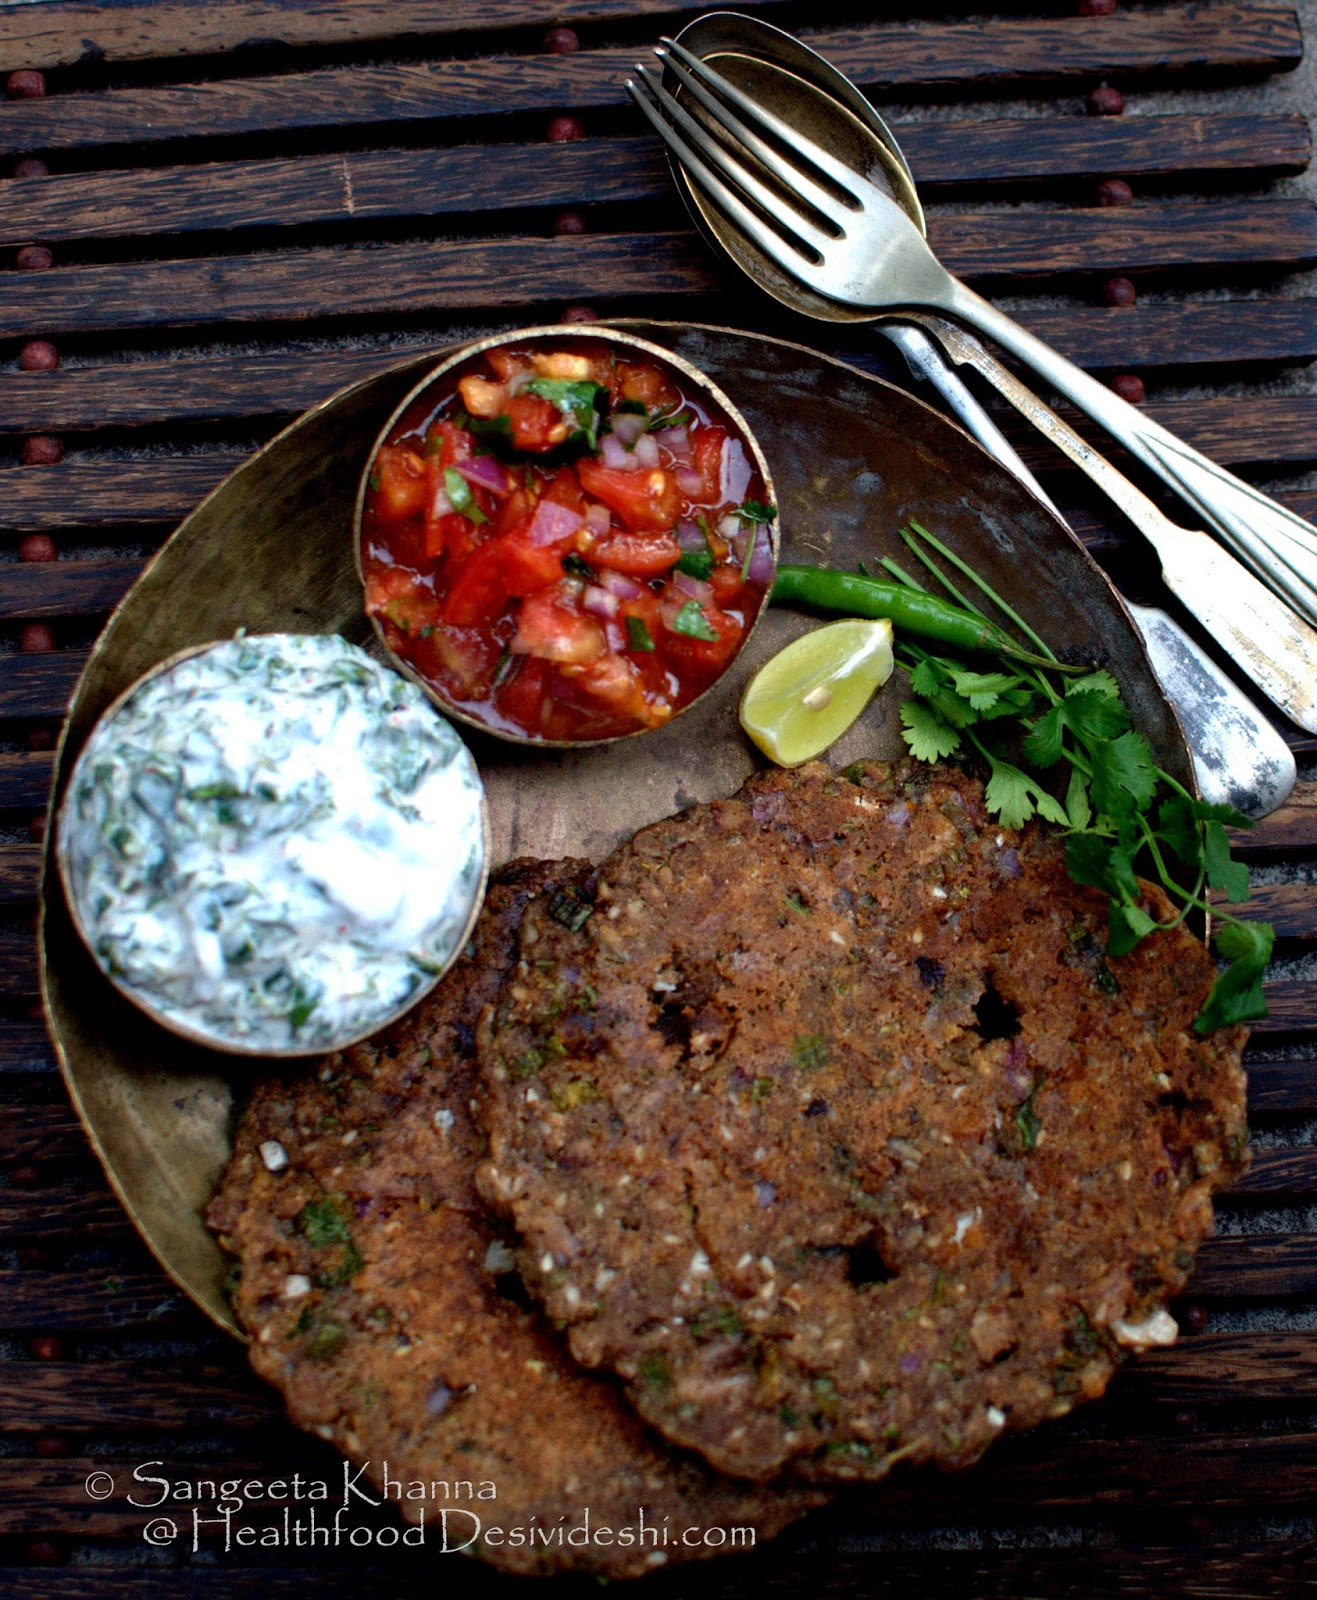 101 alternative flours : how to use ragi flour and a recipe of ragi thalipeeth with seasonal vegetables